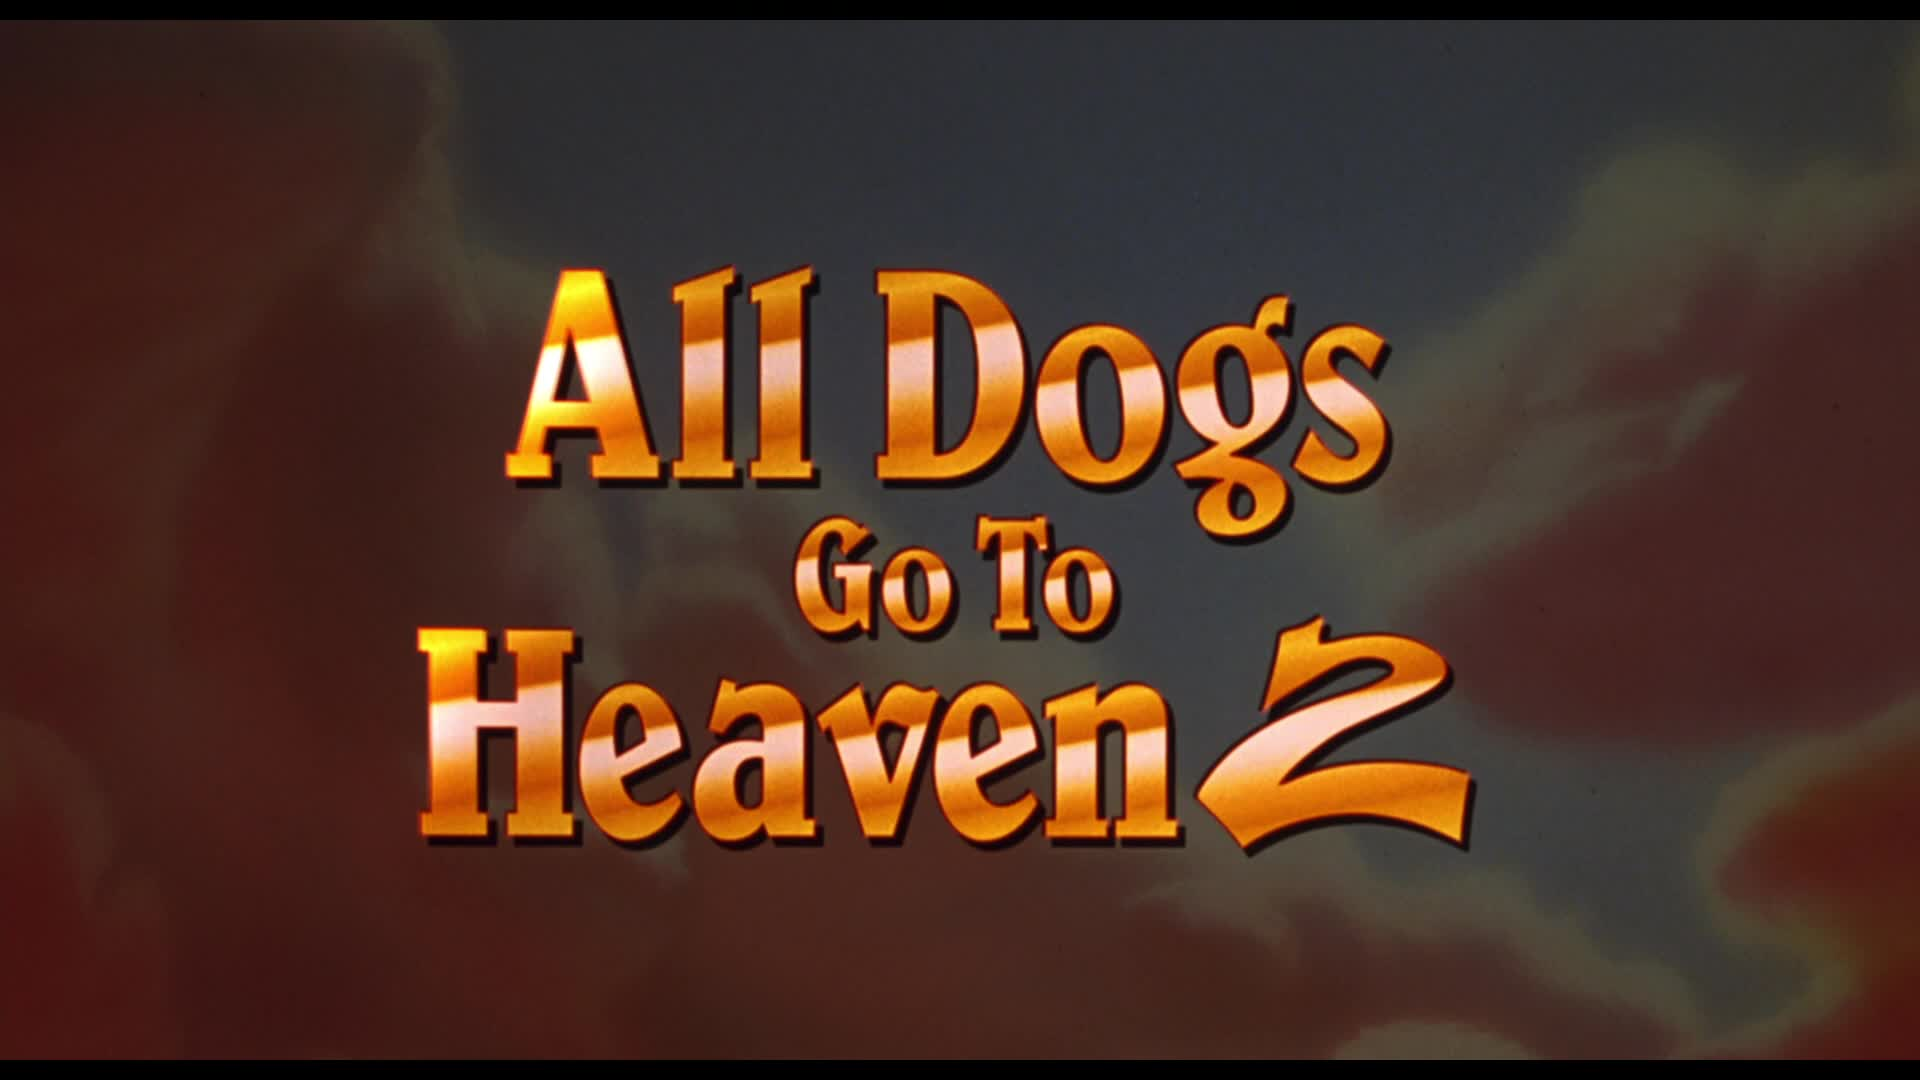 all dogs go to heaven 2 gallery of screen captures